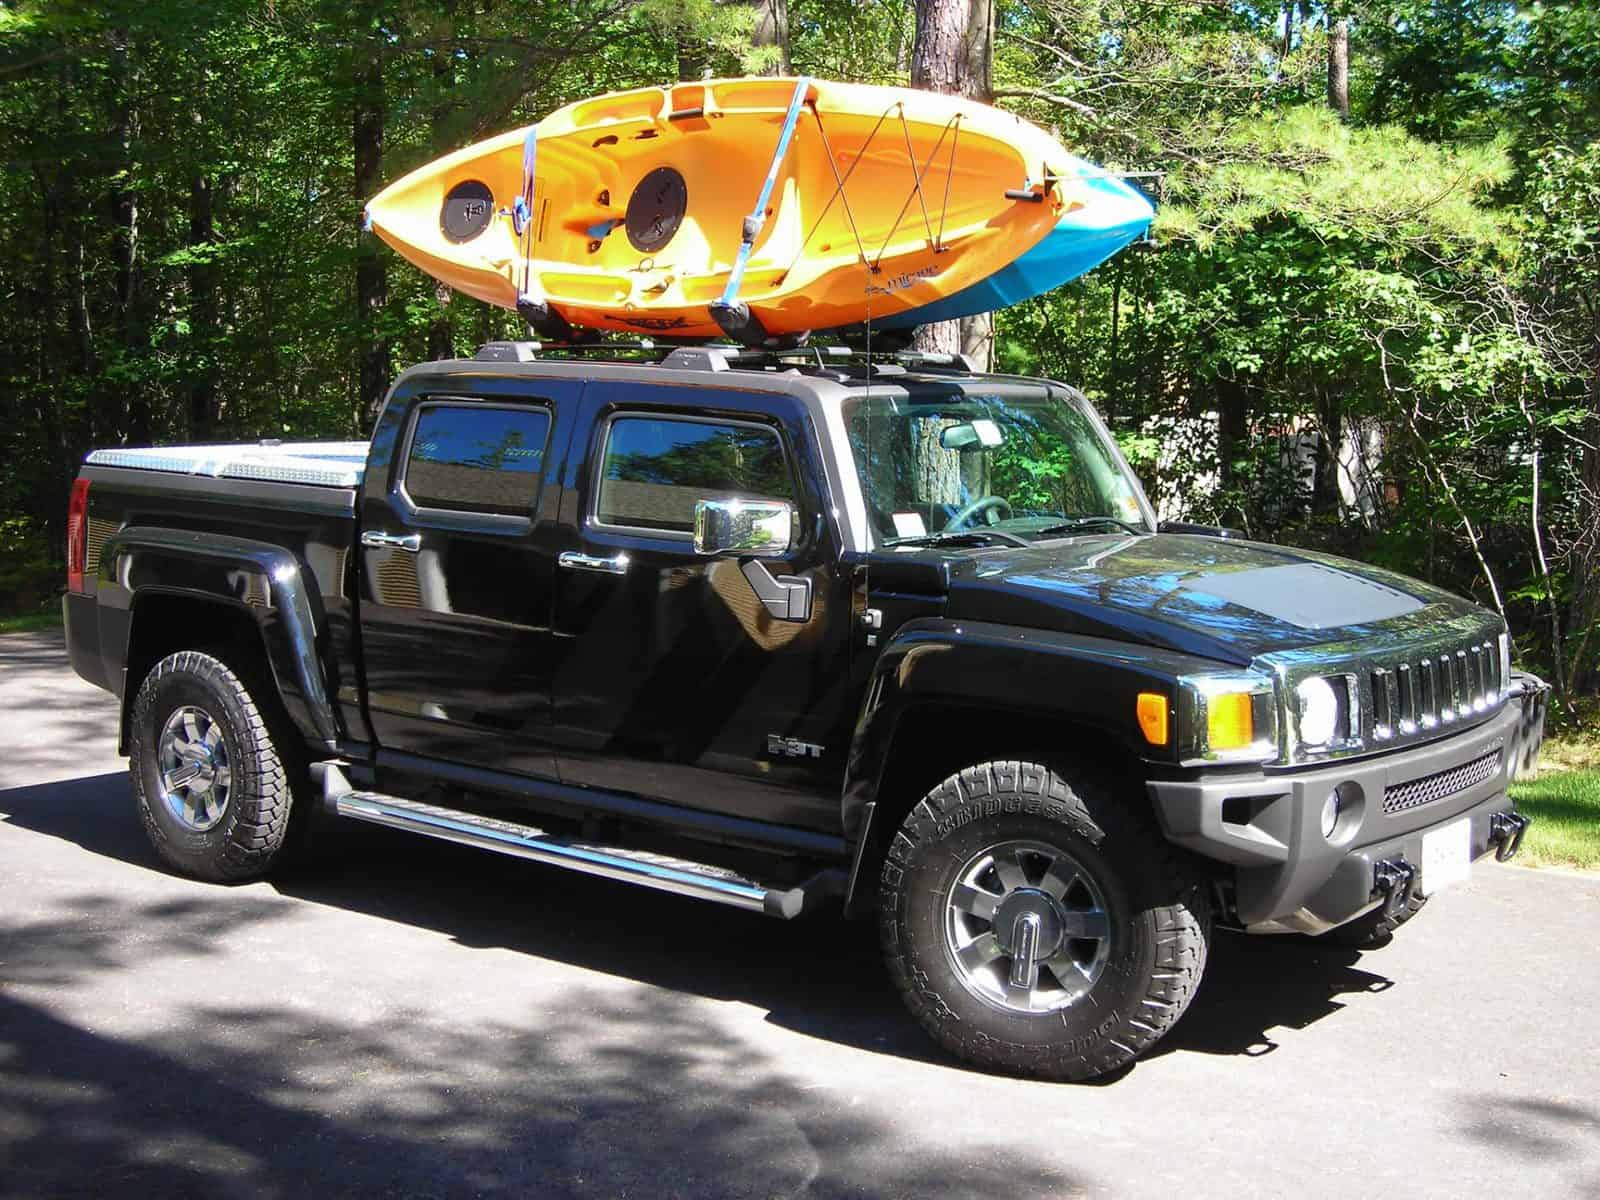 Two kayaks being transported on pick up truck rack